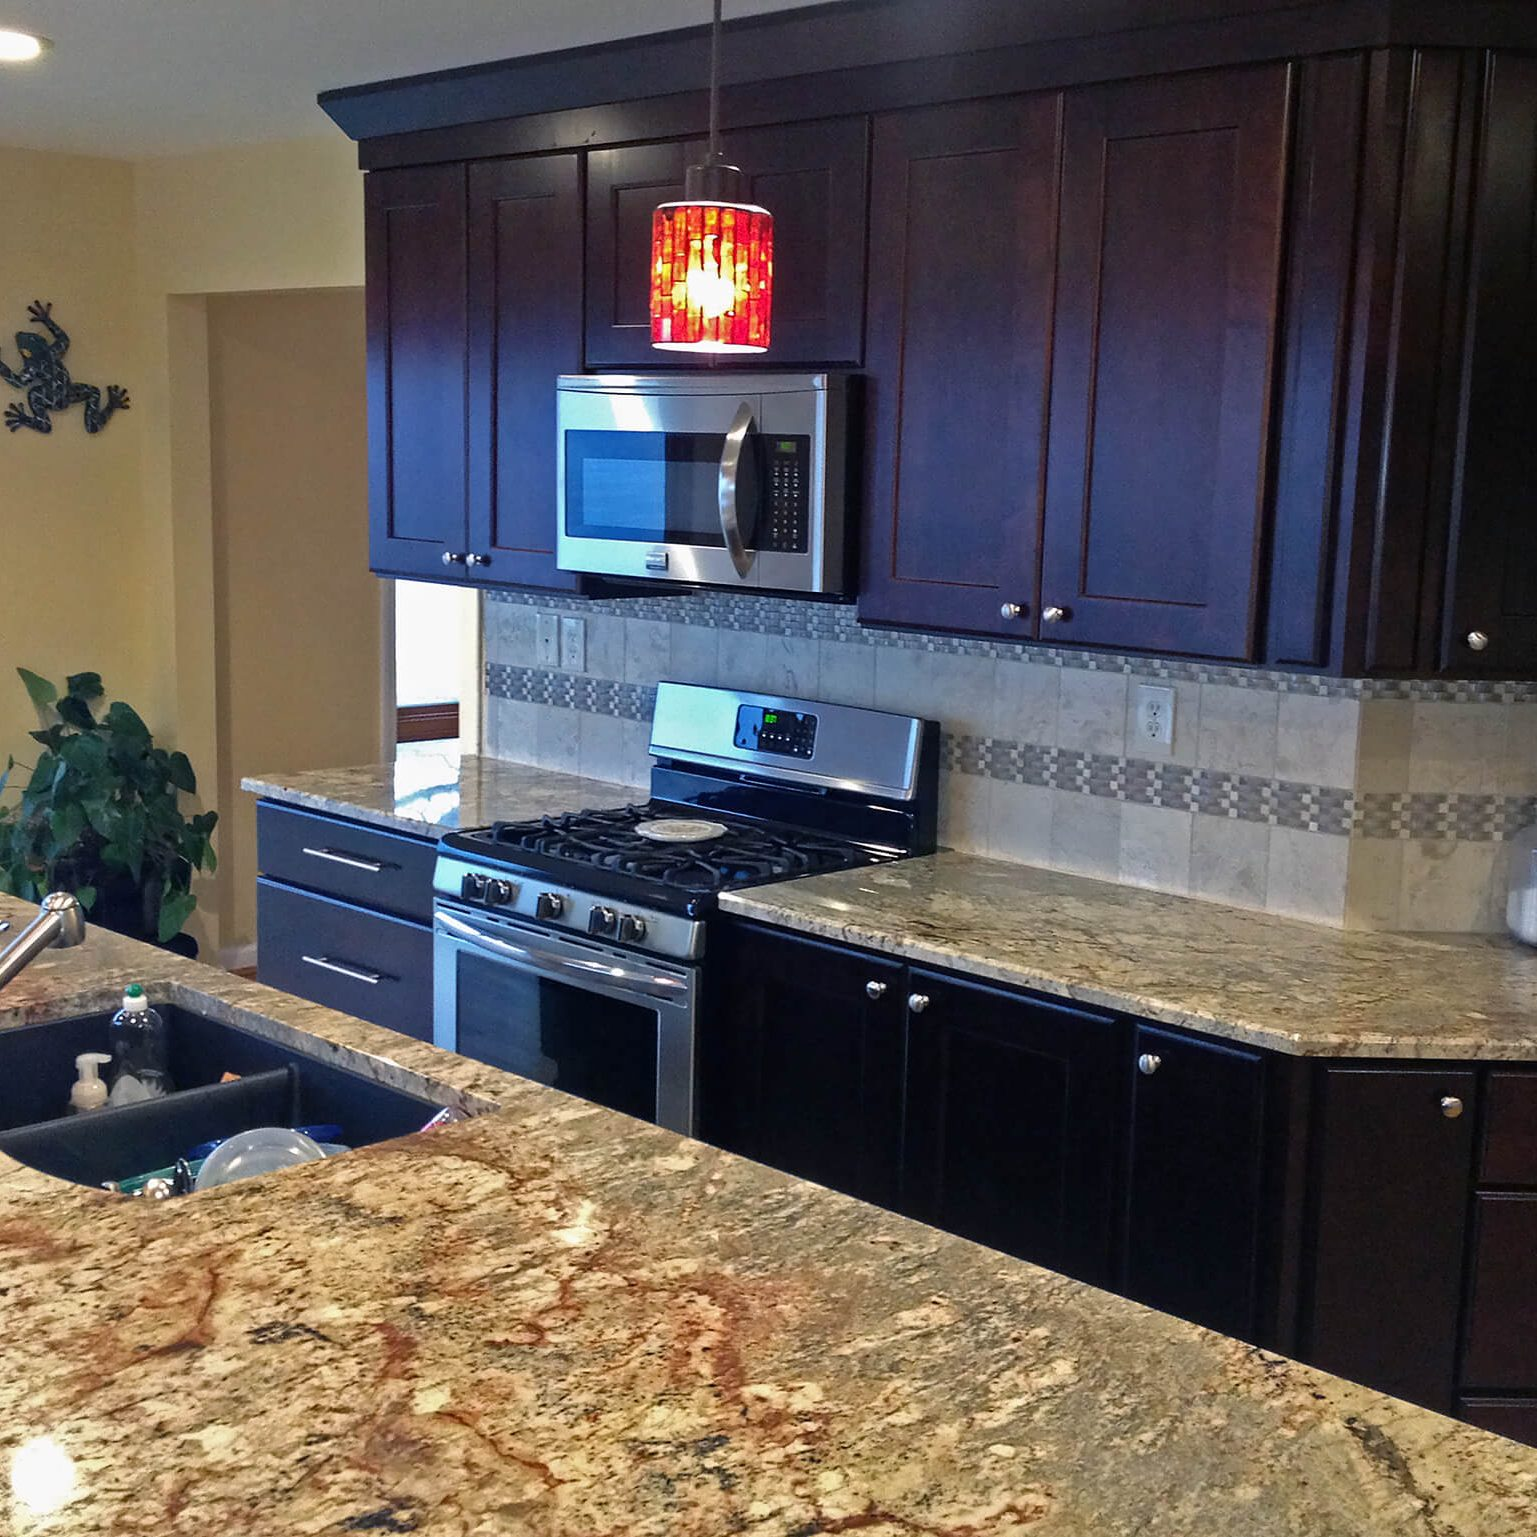 Kinetic Kitchen and Bath Gallery Photo - Kitchen remodel design 12